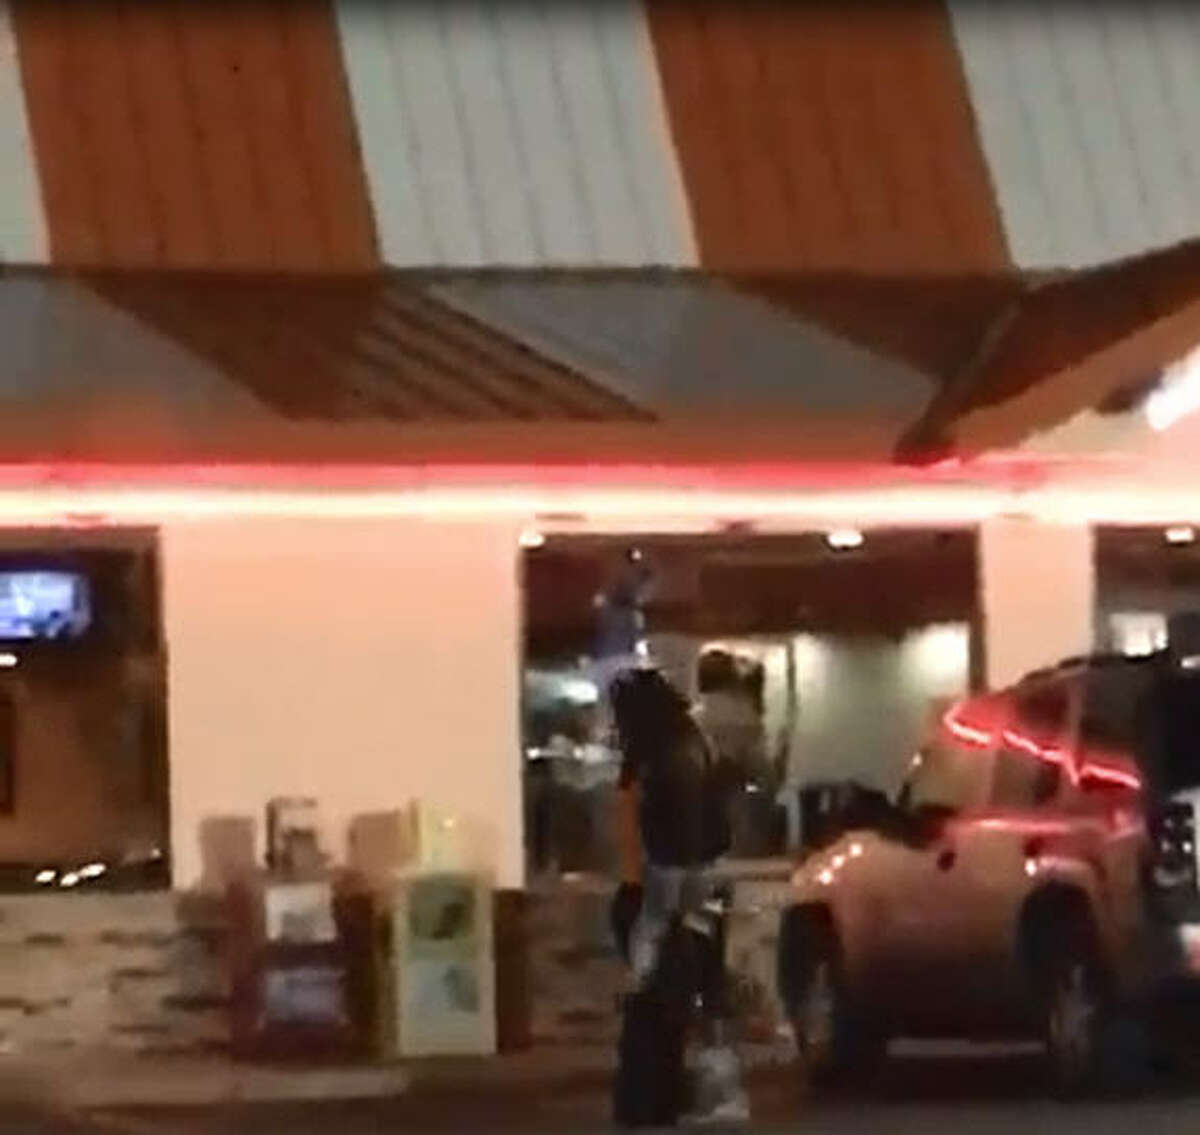 An employee at a Whataburger in Tyler, Texas was reportedly fired after she was caught on video engaging in a fight in the restaurant parking lot Friday, July 29, 2016.